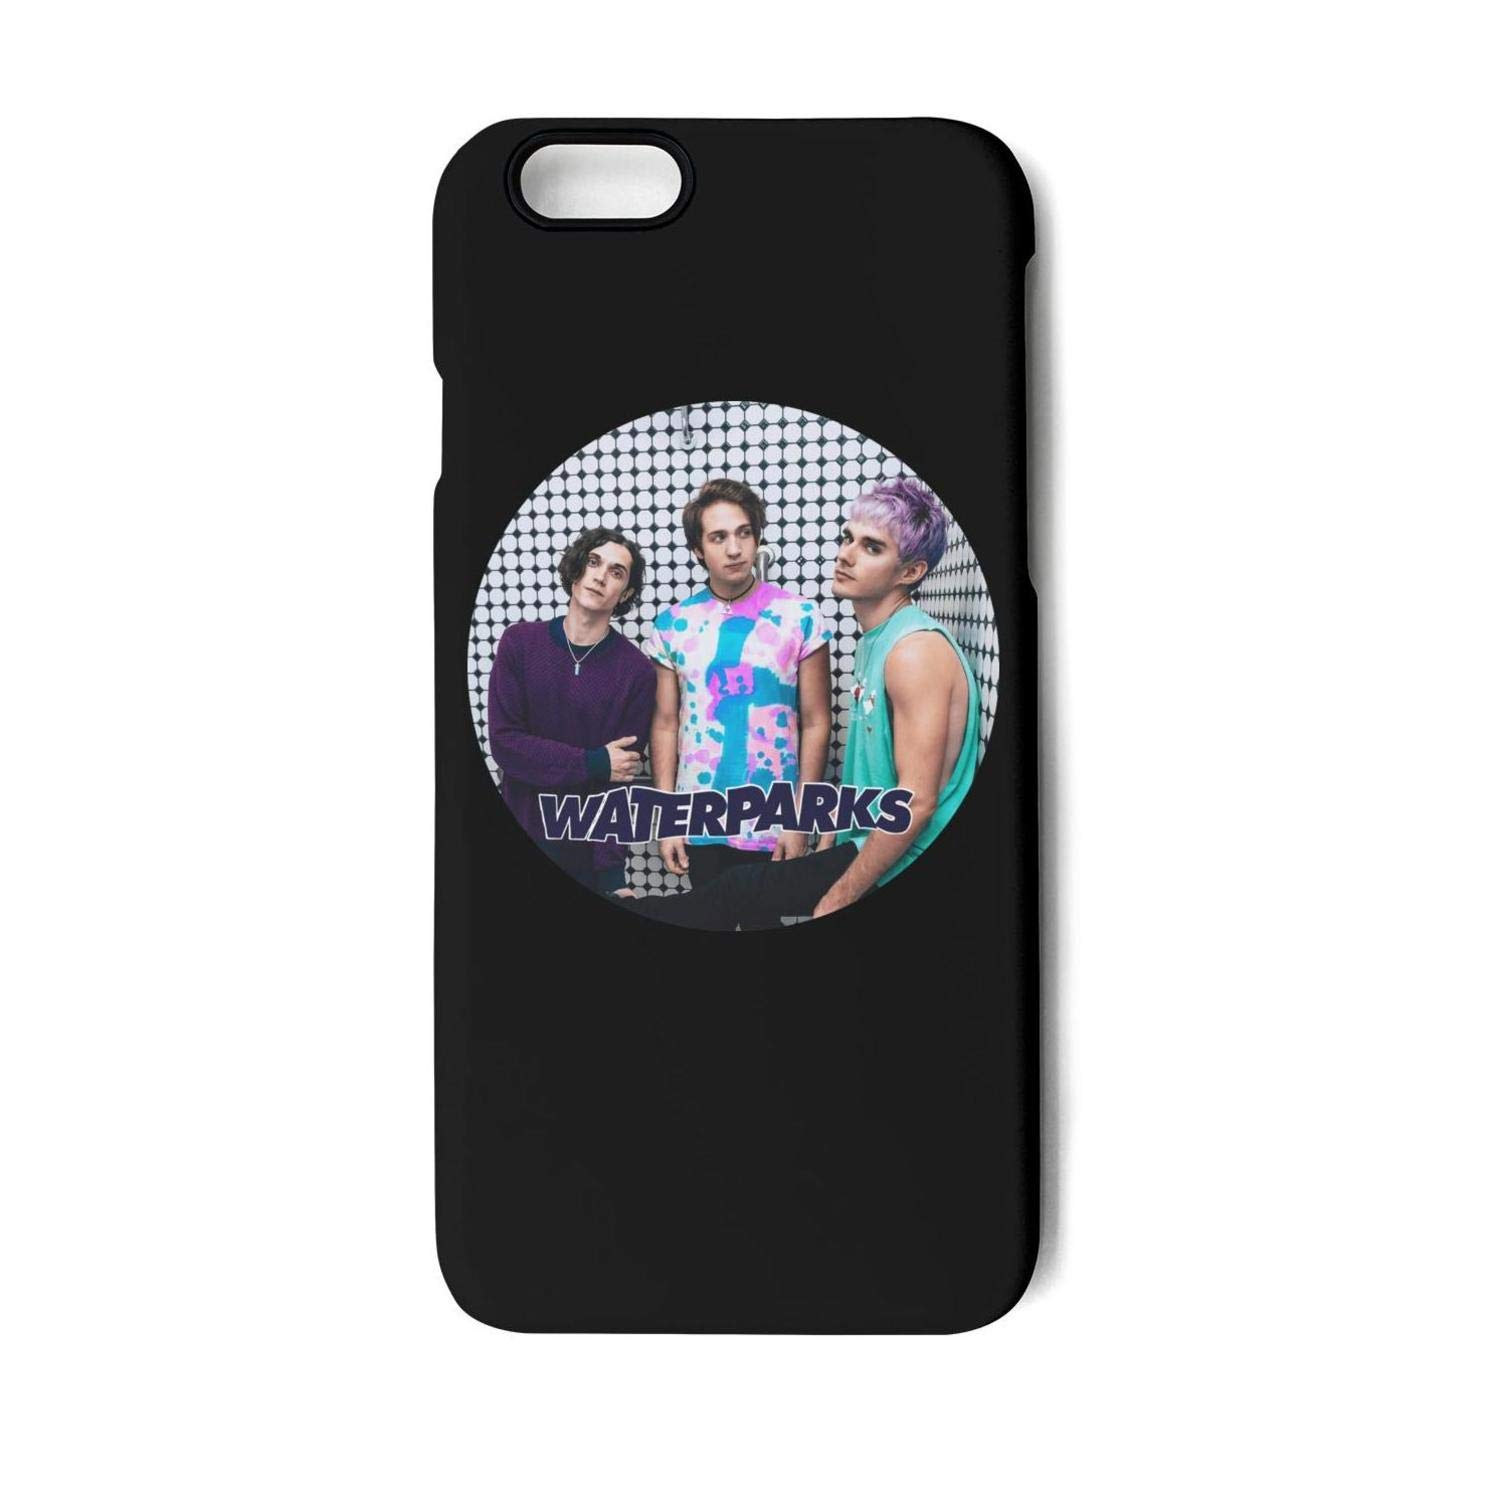 Amazon.com: iPhone 6 iPhone 6S Case Waterparks.